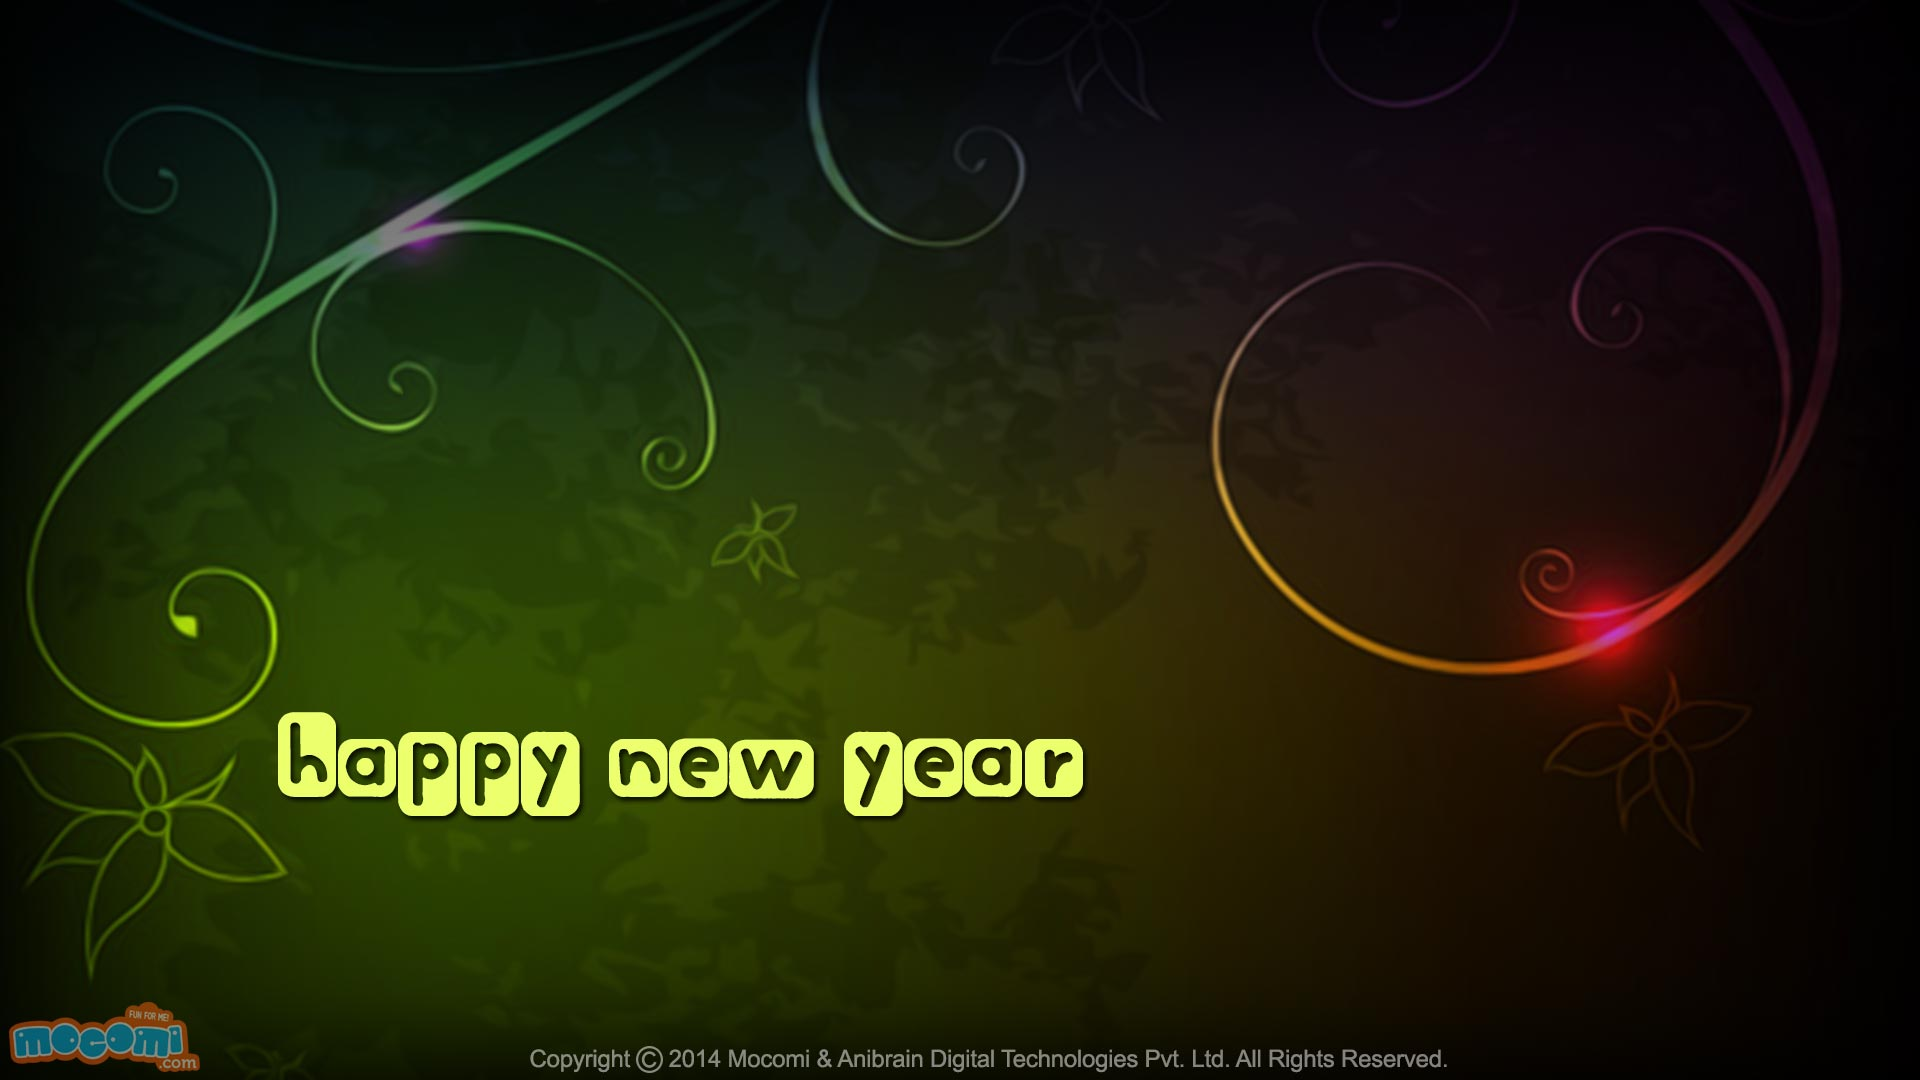 Happy New Year Wallpaper- 6